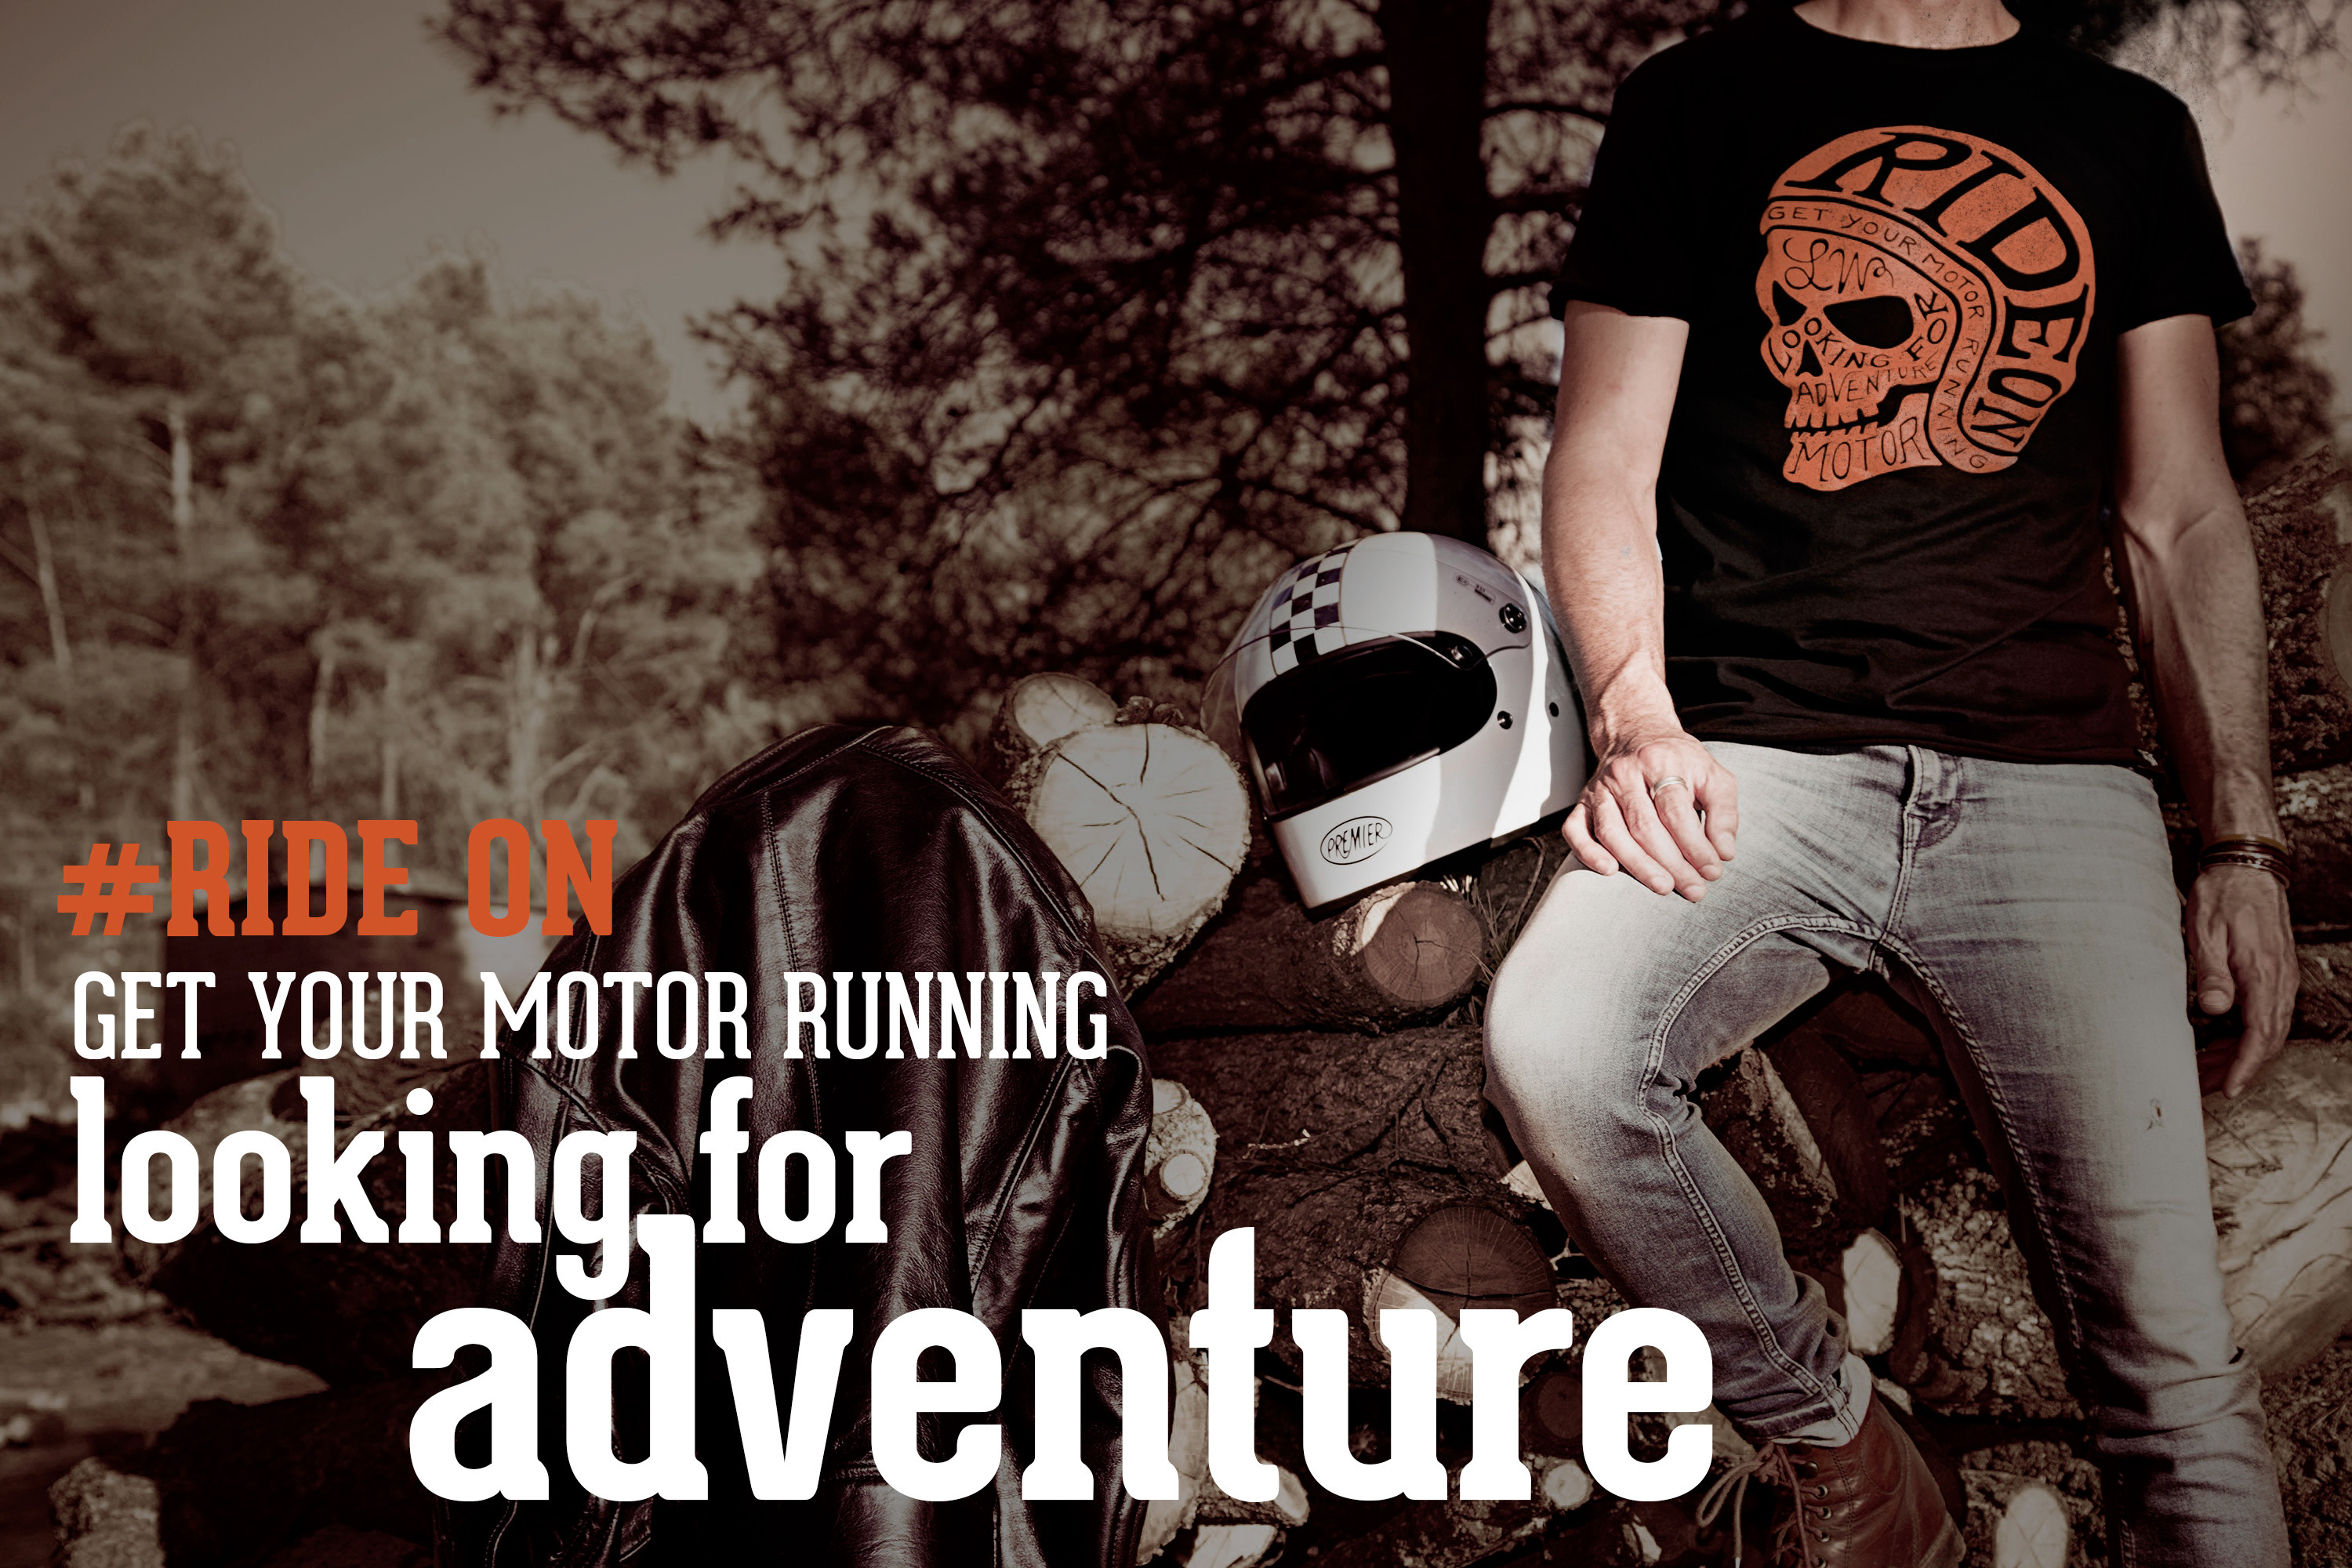 Camiseta motera Ride On! Looking for adventure...